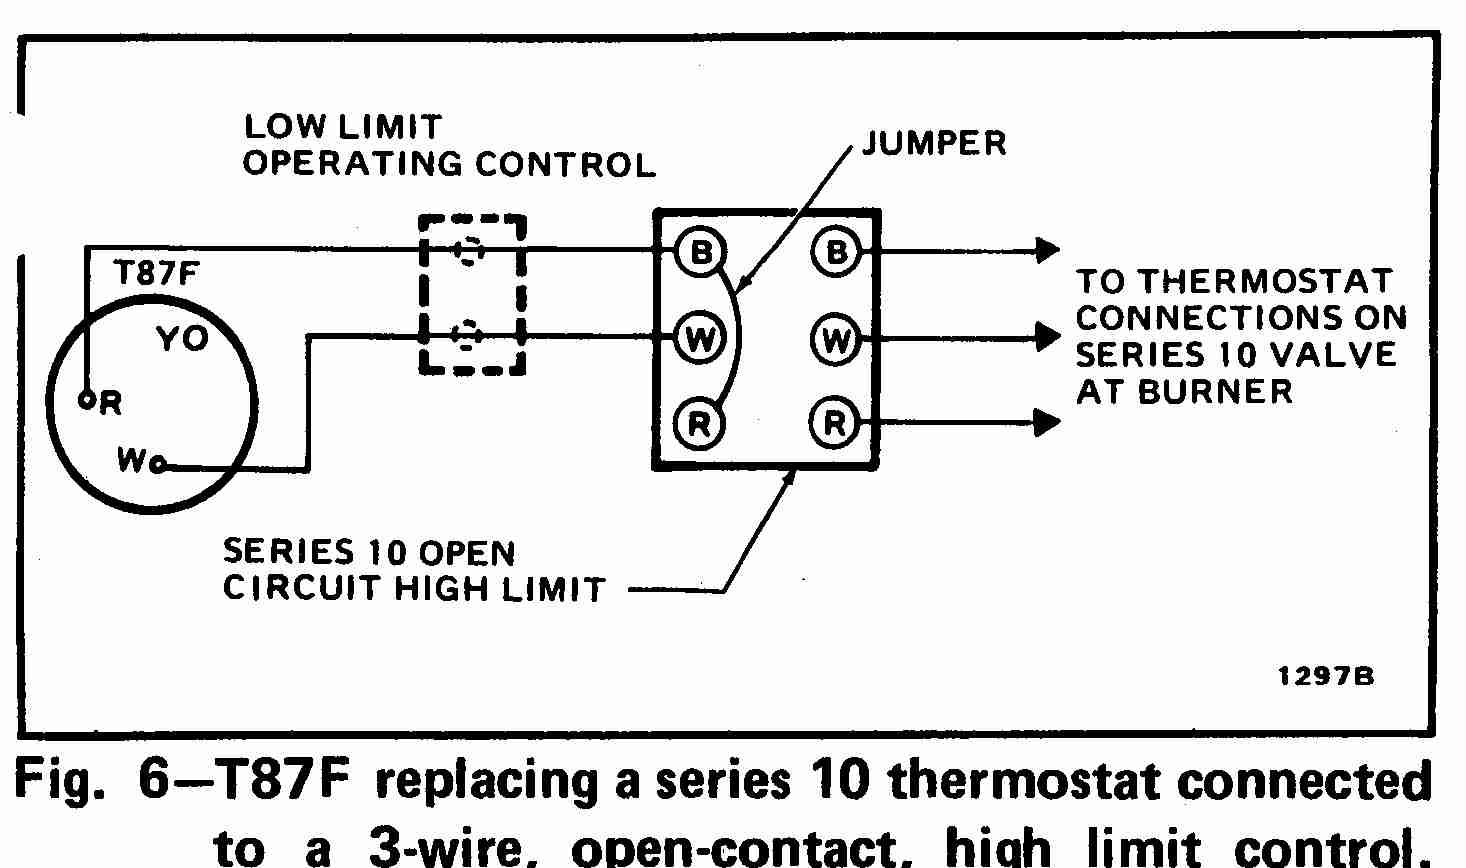 3 wire thermostat wiring diagram for a boiler honeywell chronotherm thermostat wiring diagram for a four room thermostat wiring diagrams for hvac systems